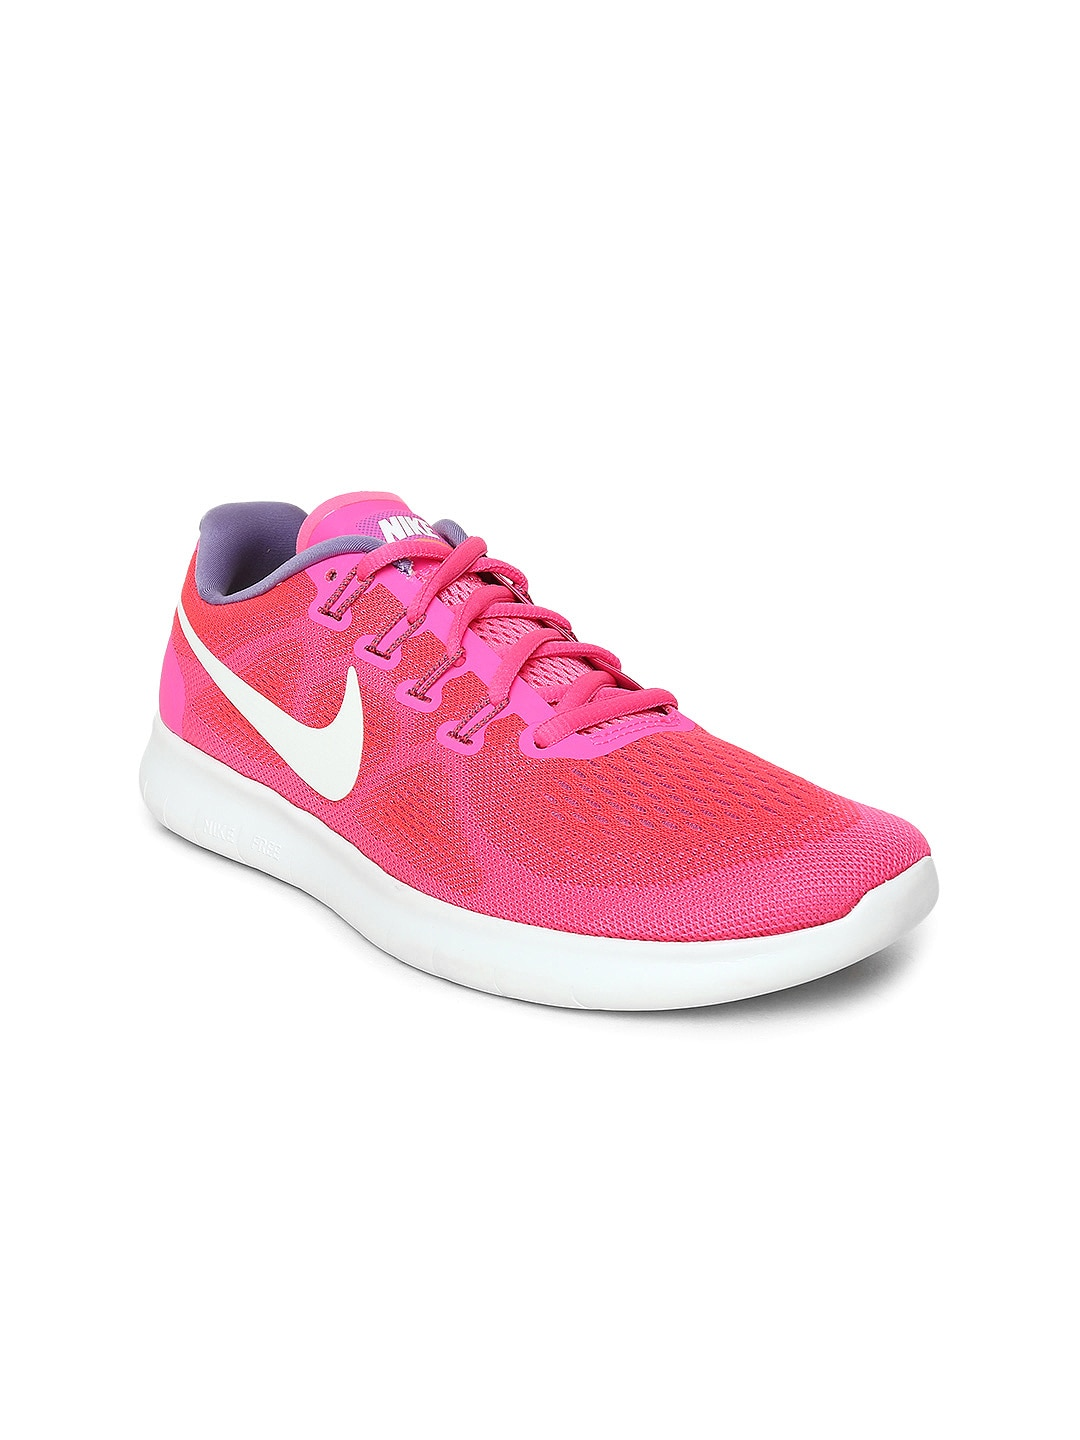 2ff7bec60d33 where can i get pink free runs Jordan ...